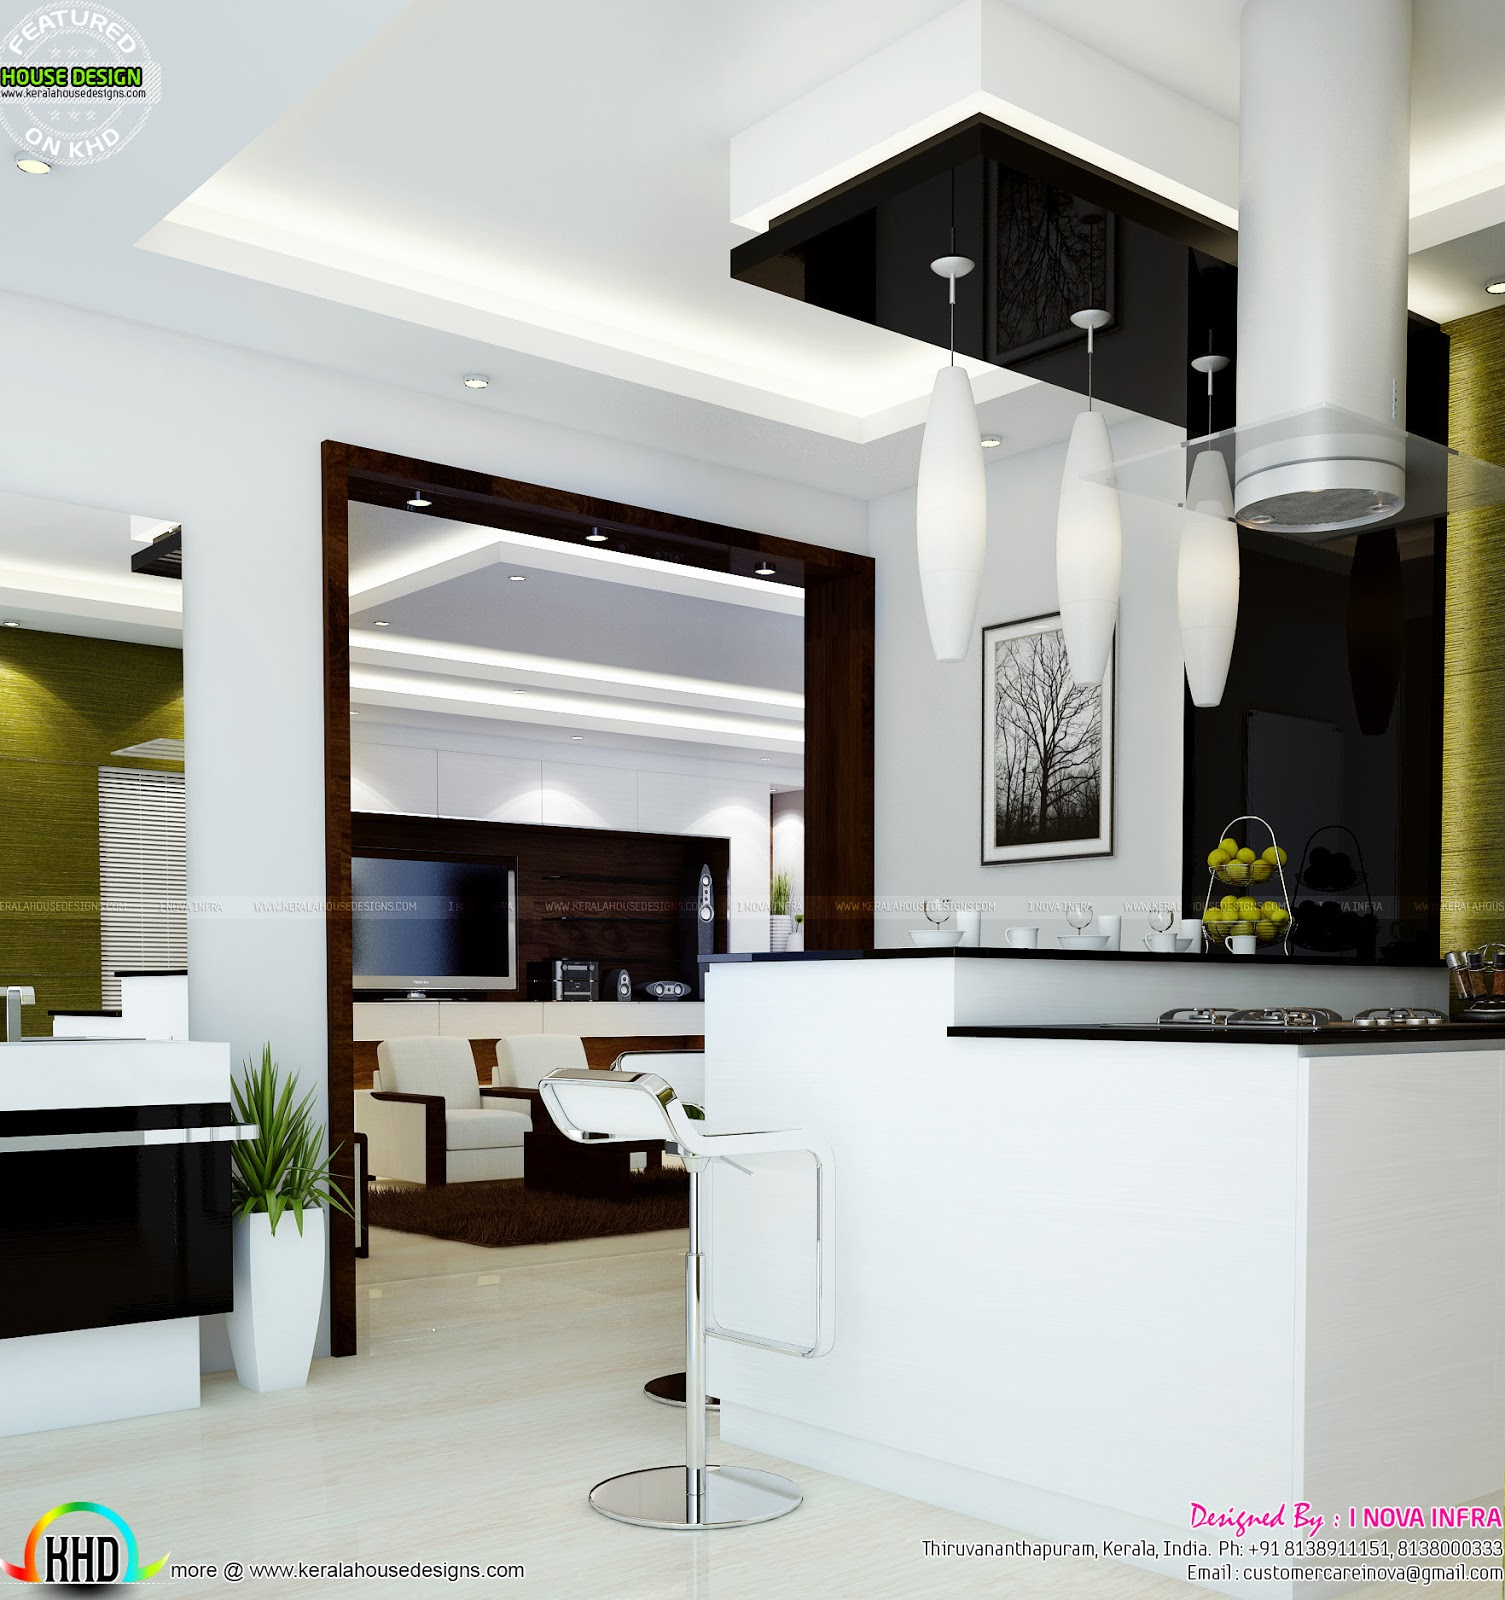 House Interior Design Kitchen: Home Interior Designs By I Nova Infra